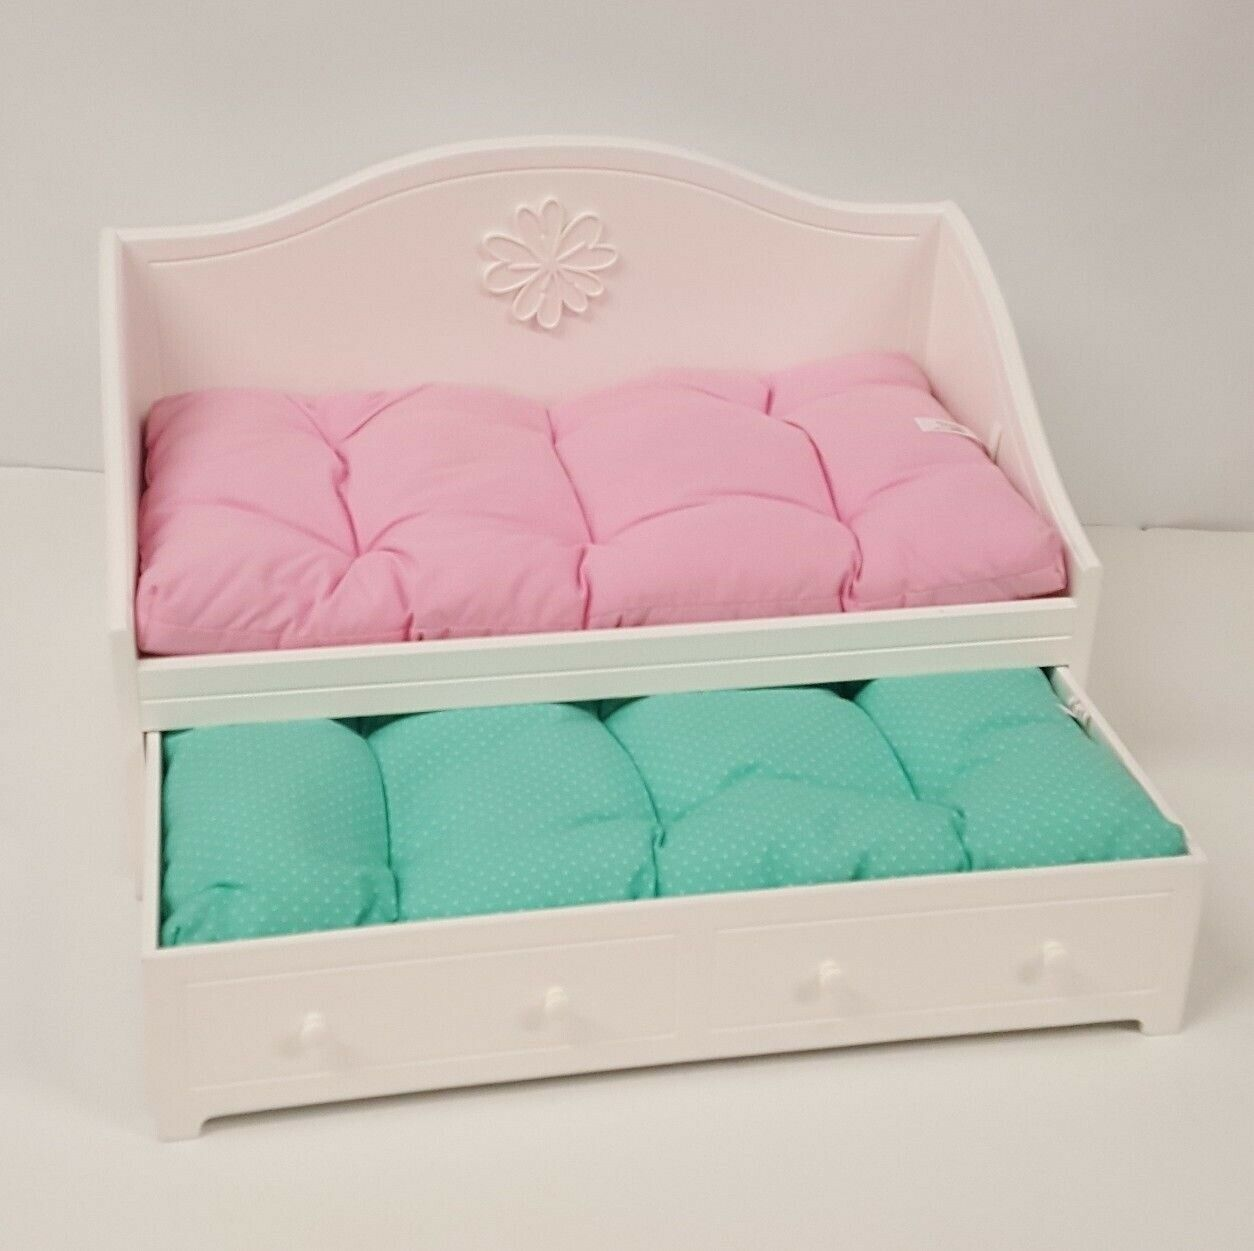 American Girl Doll Dreamy Daybed